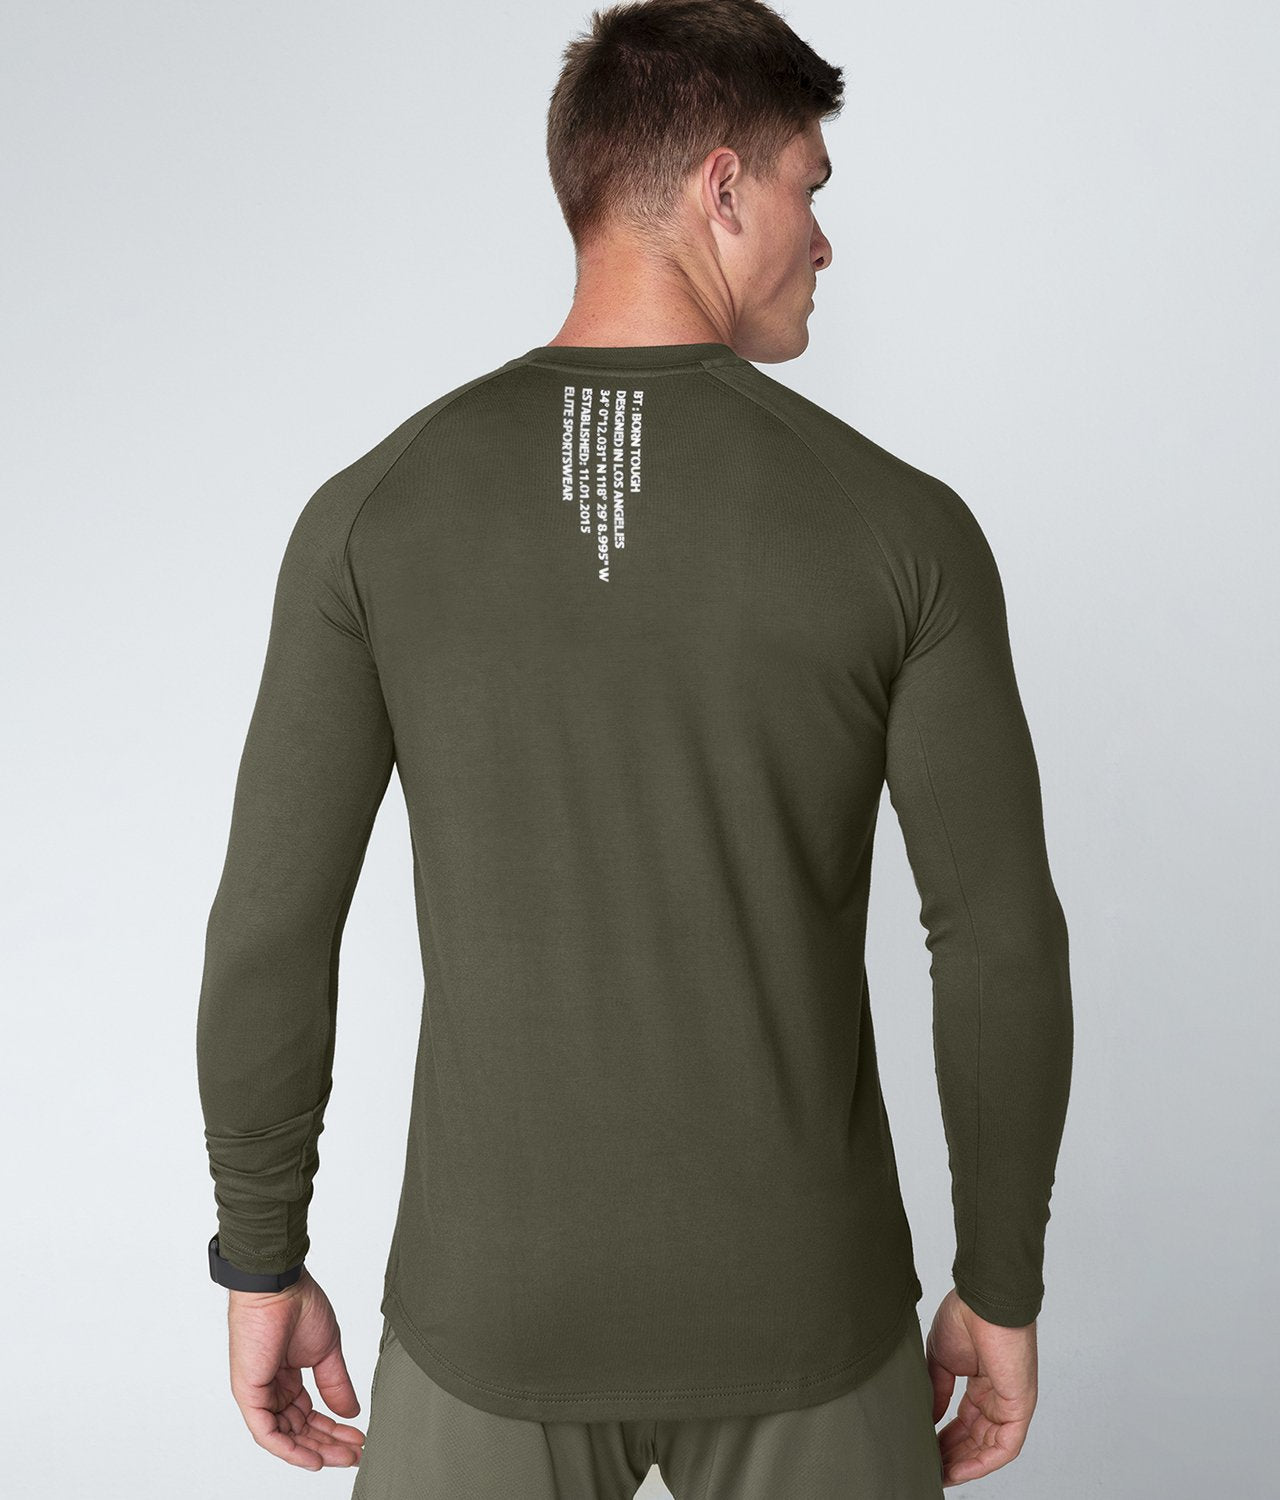 Born Tough United Kingdom Core Fit Breathable Army Green Long Sleeve Gym Workout Shirt For Men